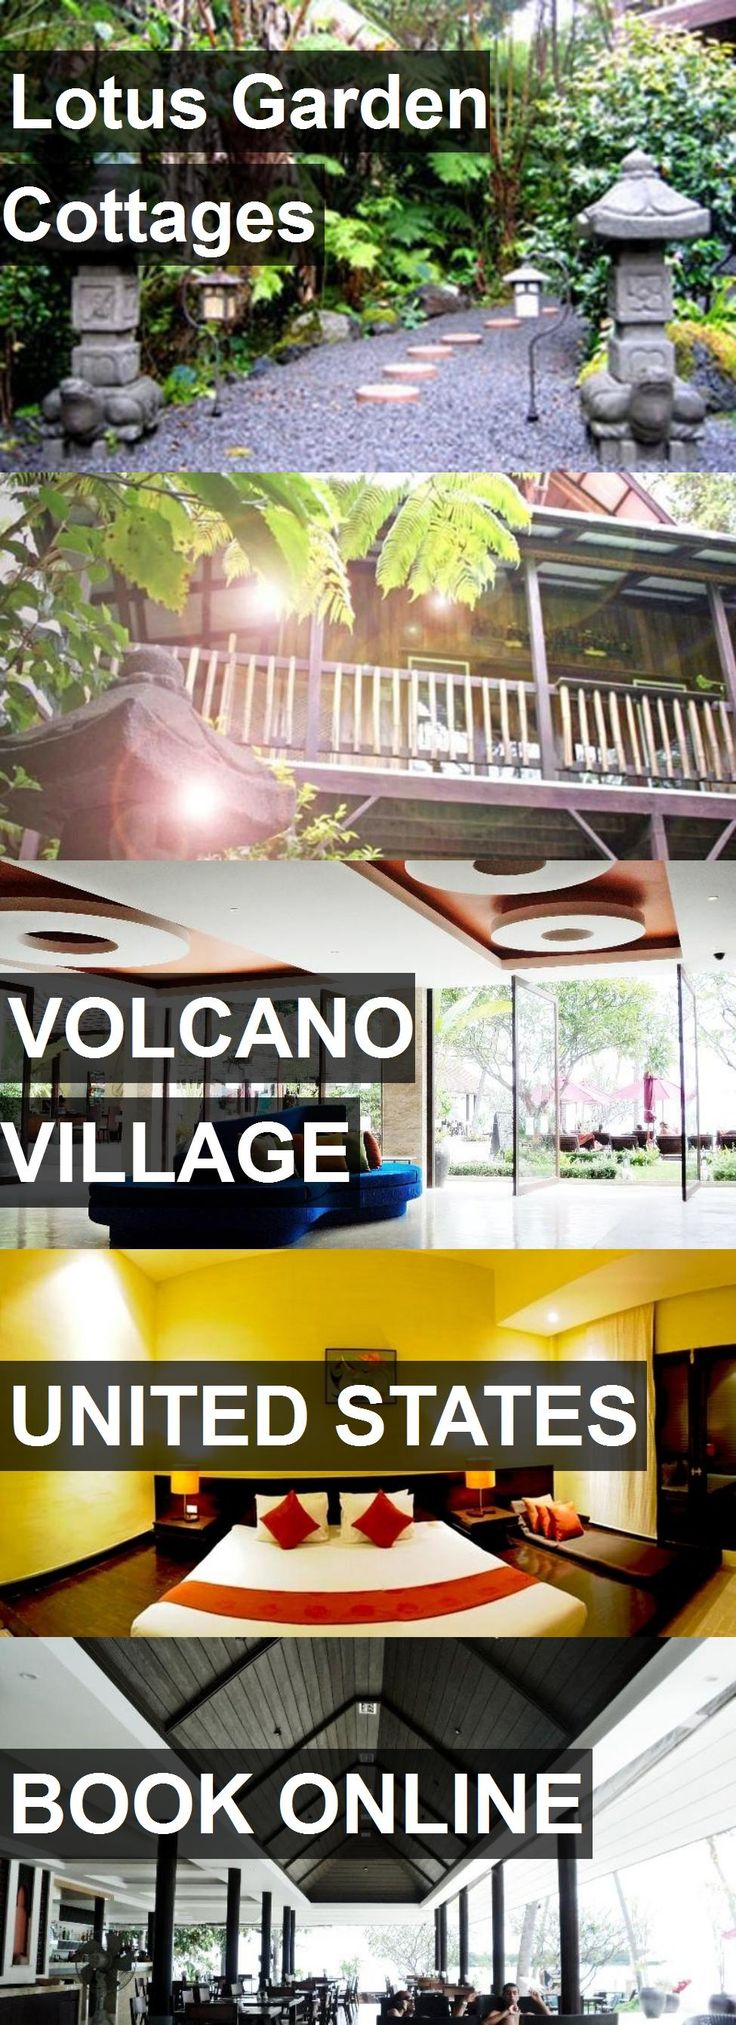 Hotel Lotus Garden Cottages in Volcano Village, United States. For more information, photos, reviews and best prices please follow the link. #UnitedStates #VolcanoVillage #travel #vacation #hotel